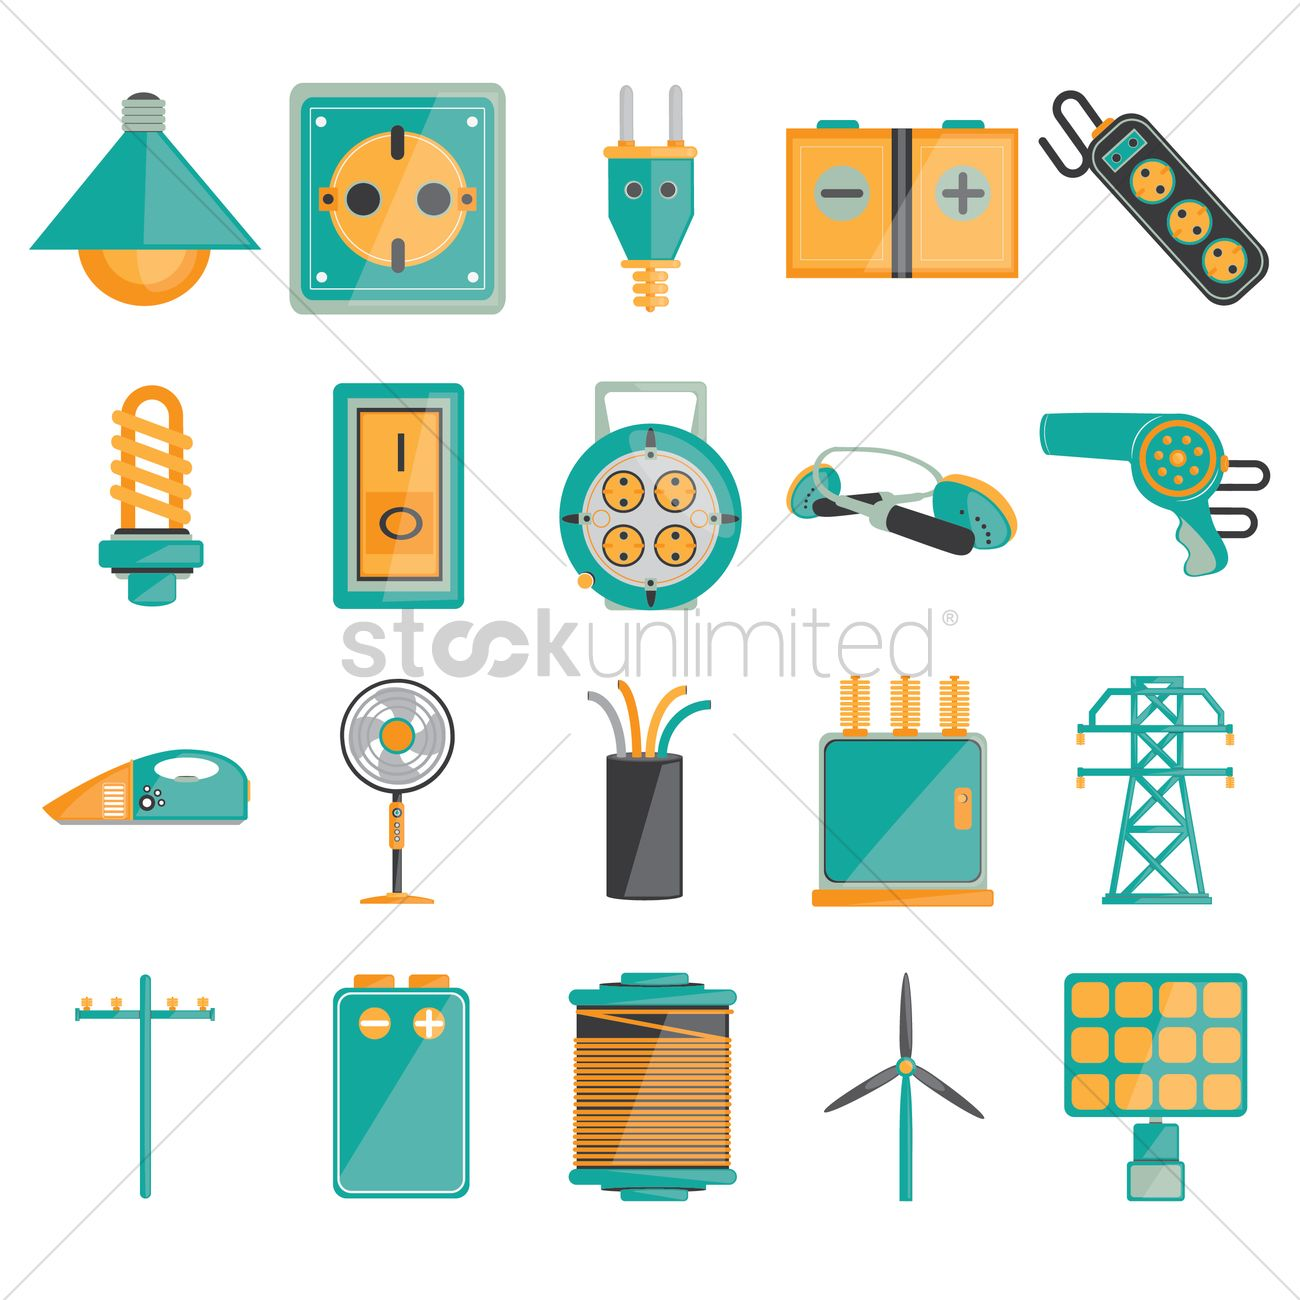 Set Of Electrical Icons Vector Image 1451581 Stockunlimited